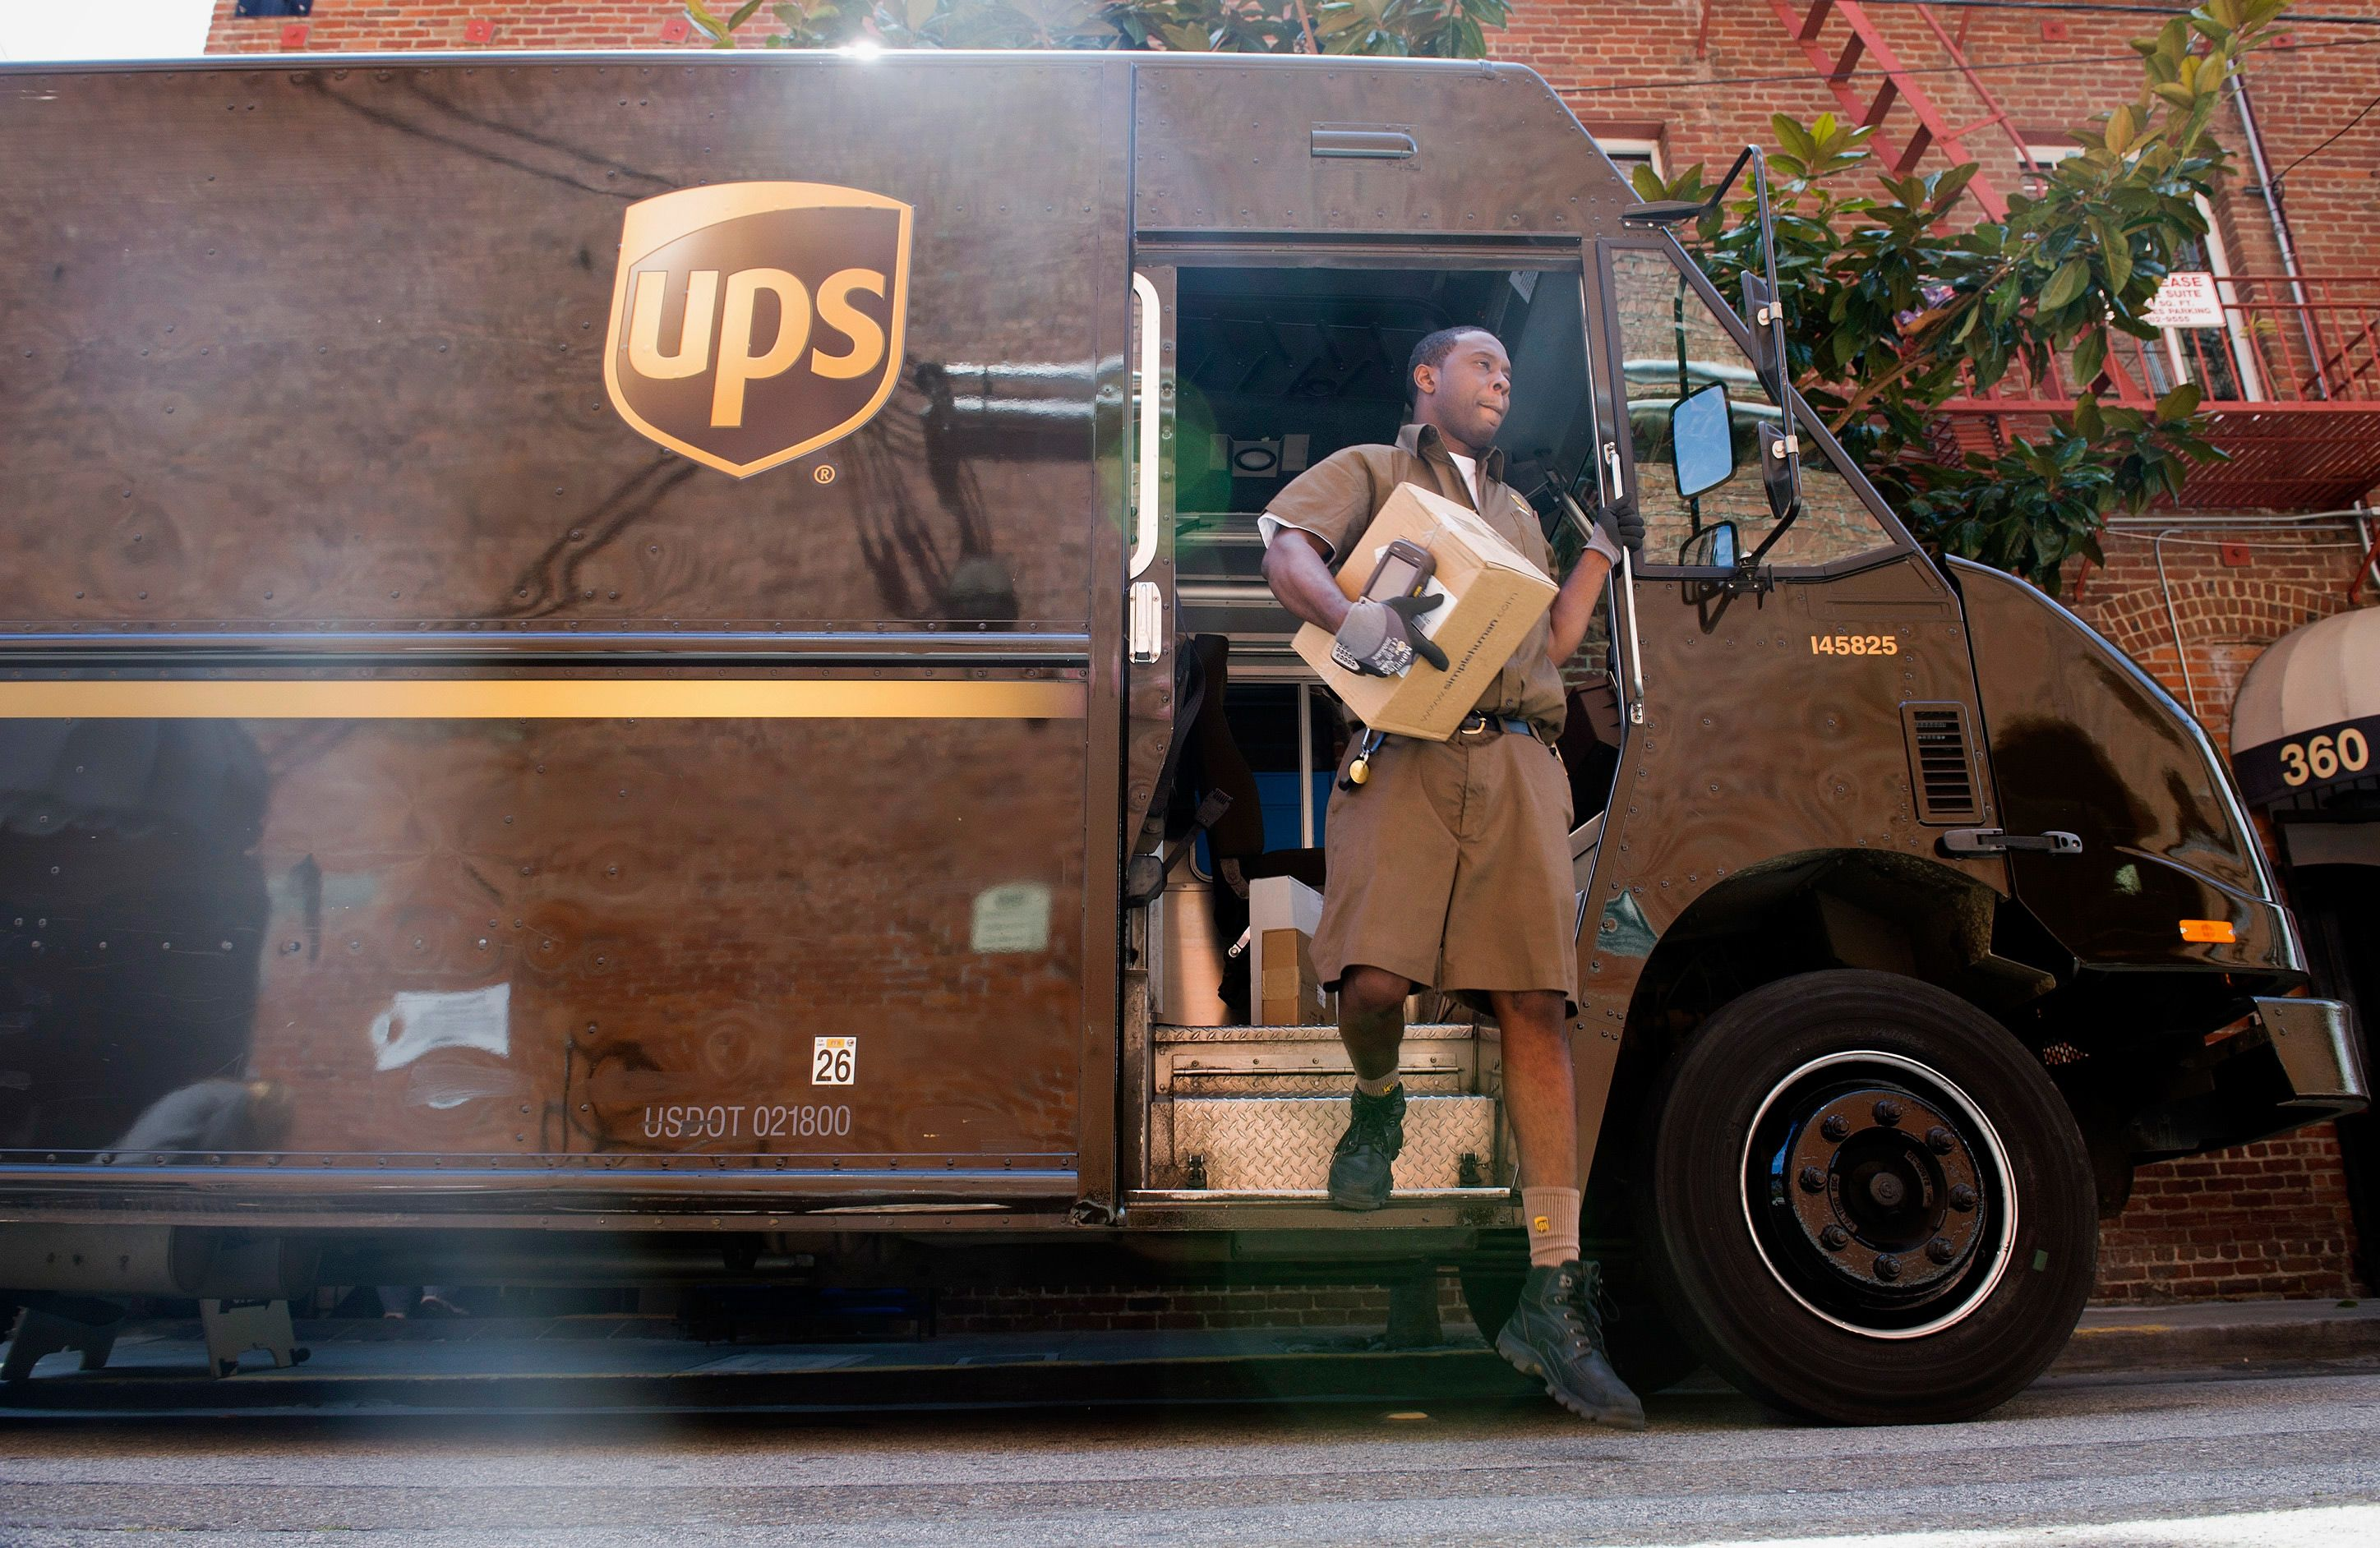 How Late Does UPS Deliver What Happens If FedEx/UPS Do Not Deliver On Time? – Refund Logistics